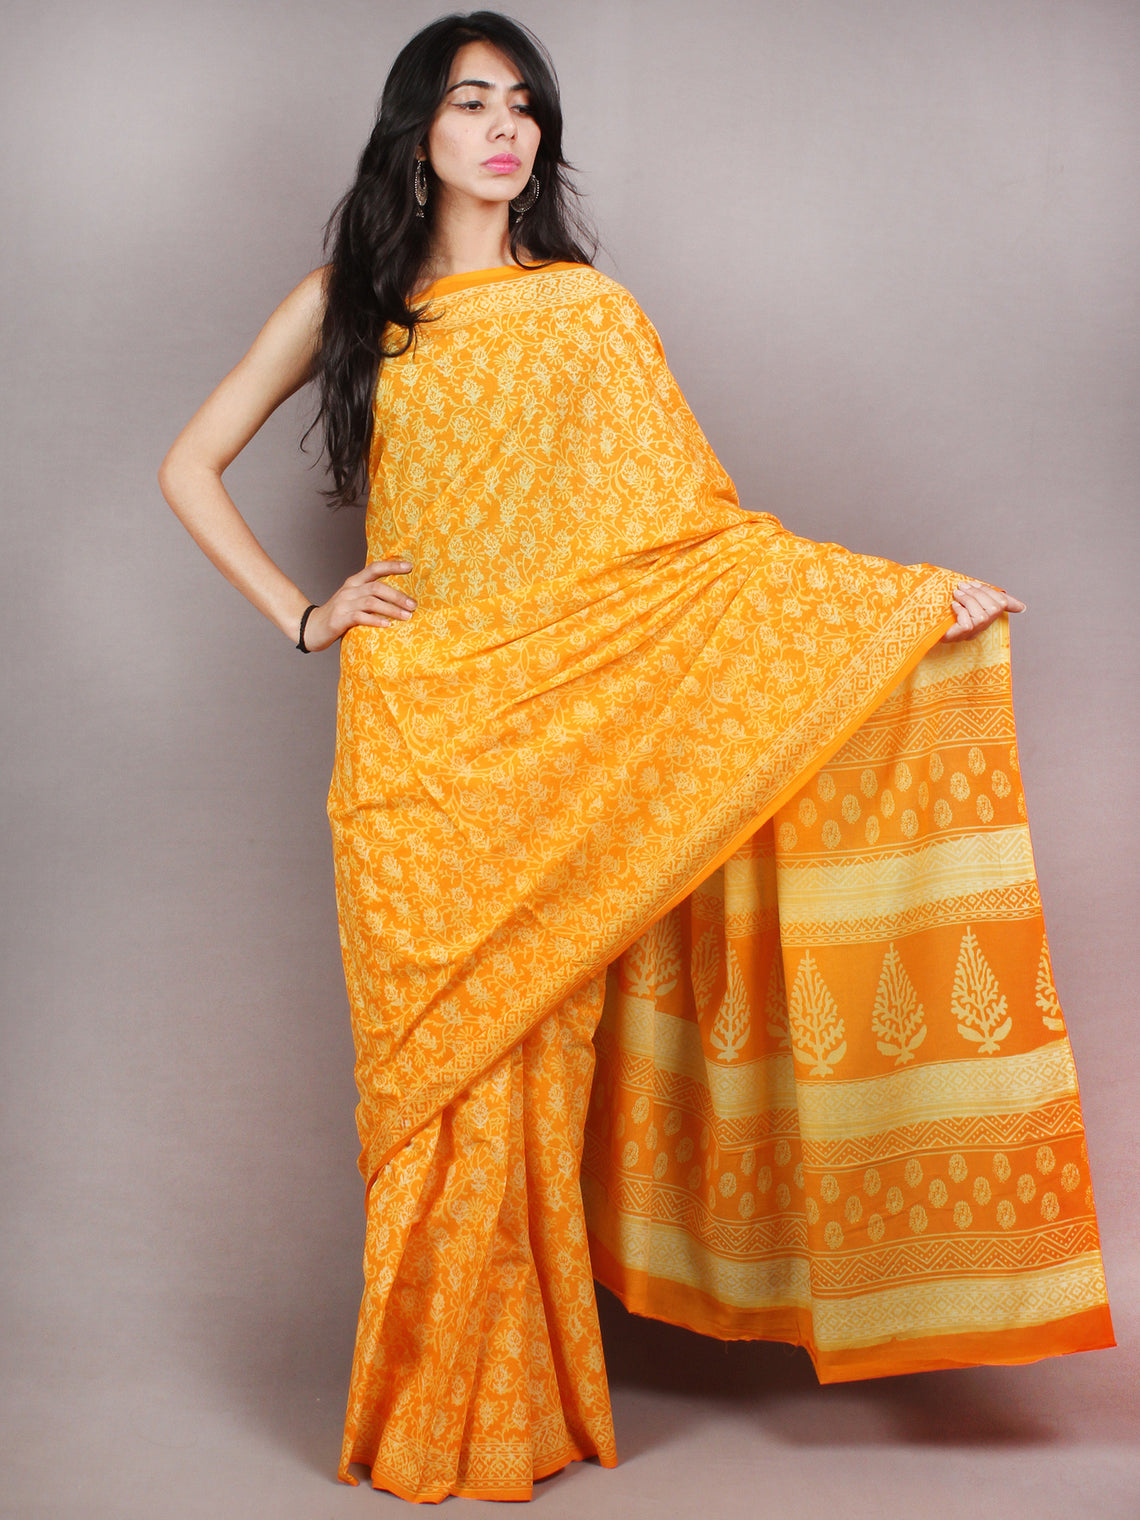 Yellow Beige Hand Block Printed in Natural Colors Cotton Mul Saree - S03170779